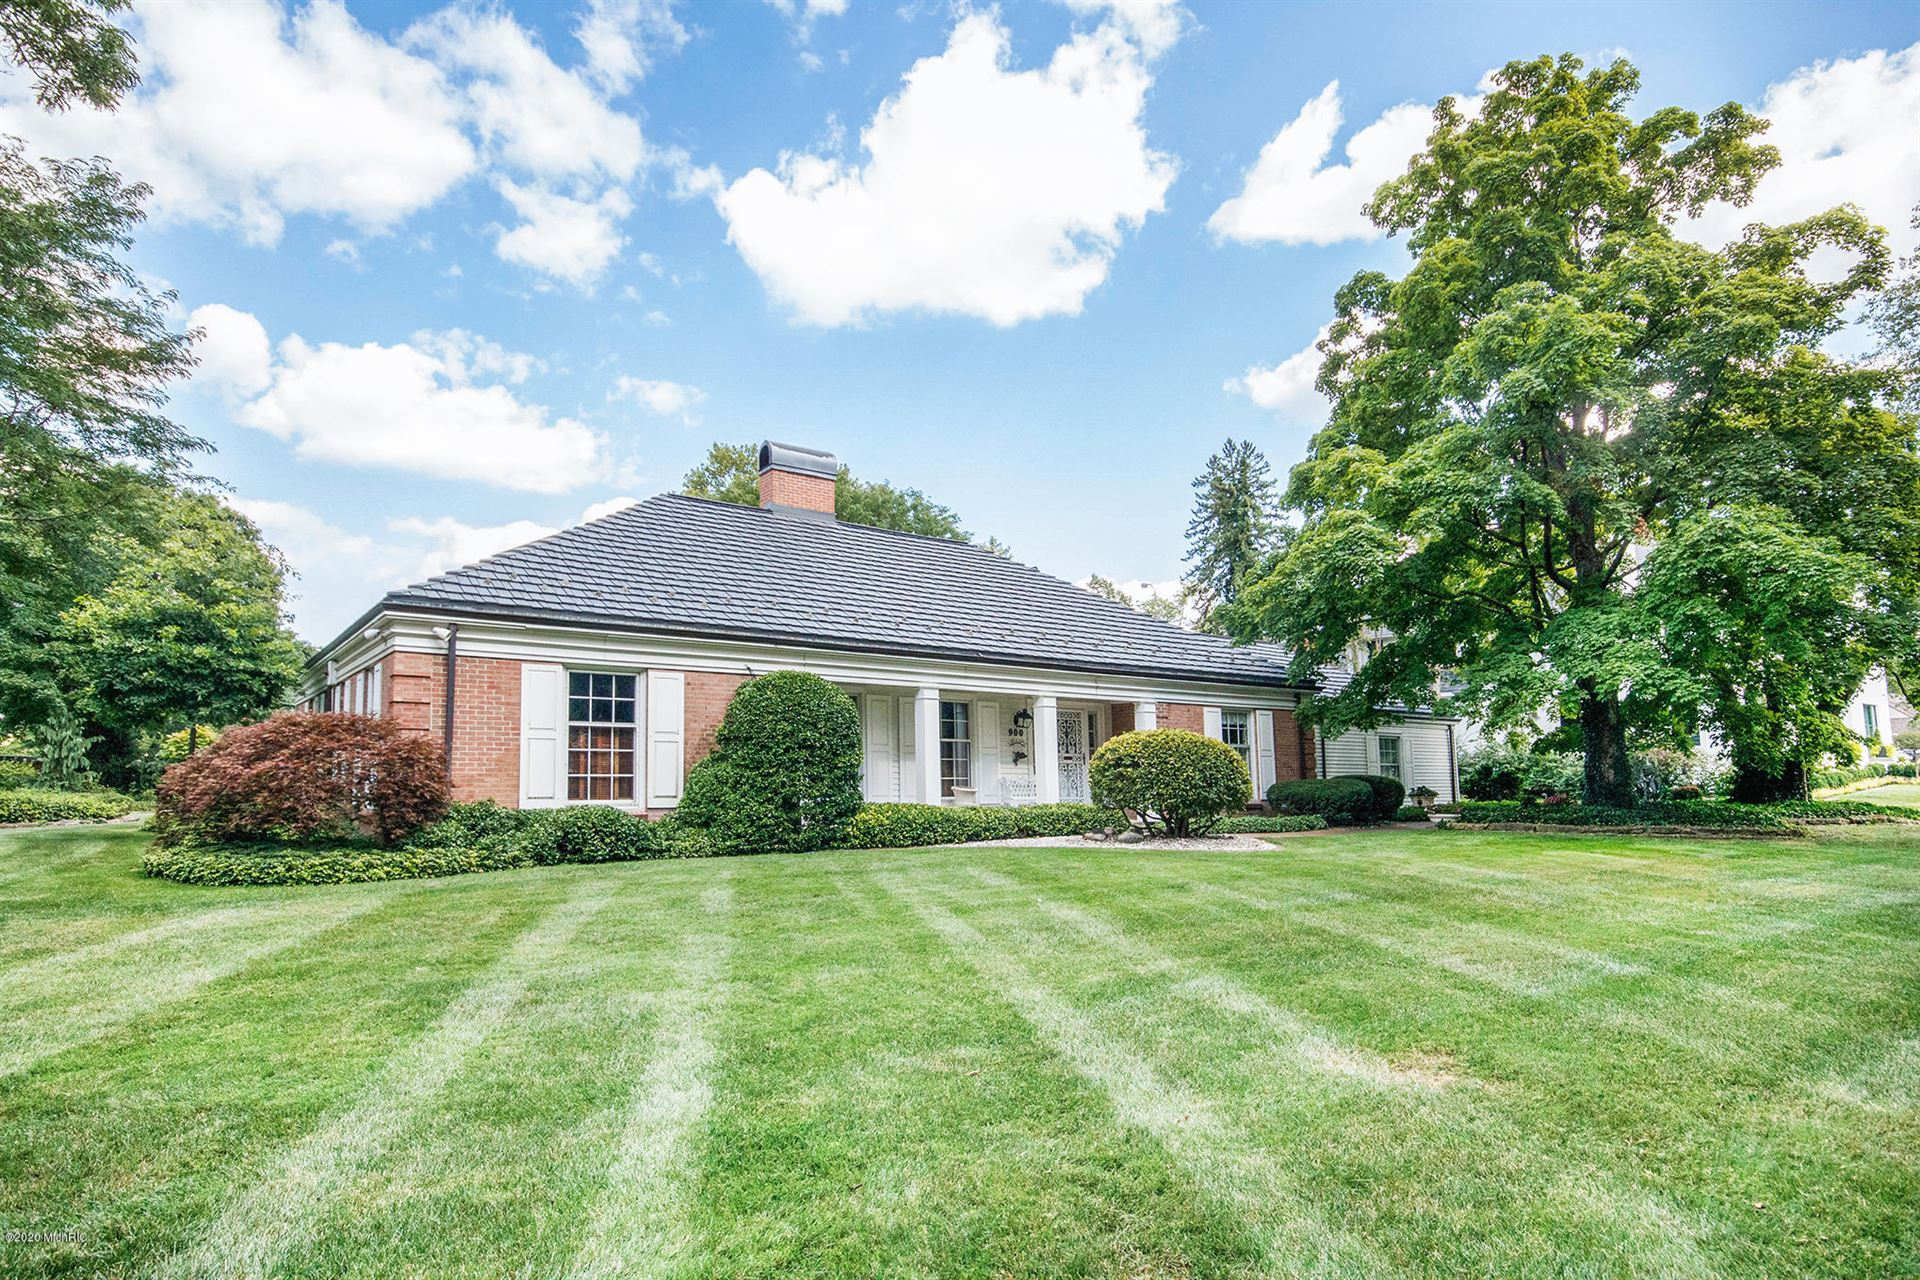 Photo of 900 Santa Barbara Drive SE, East Grand Rapids, MI 49506 (MLS # 20024135)